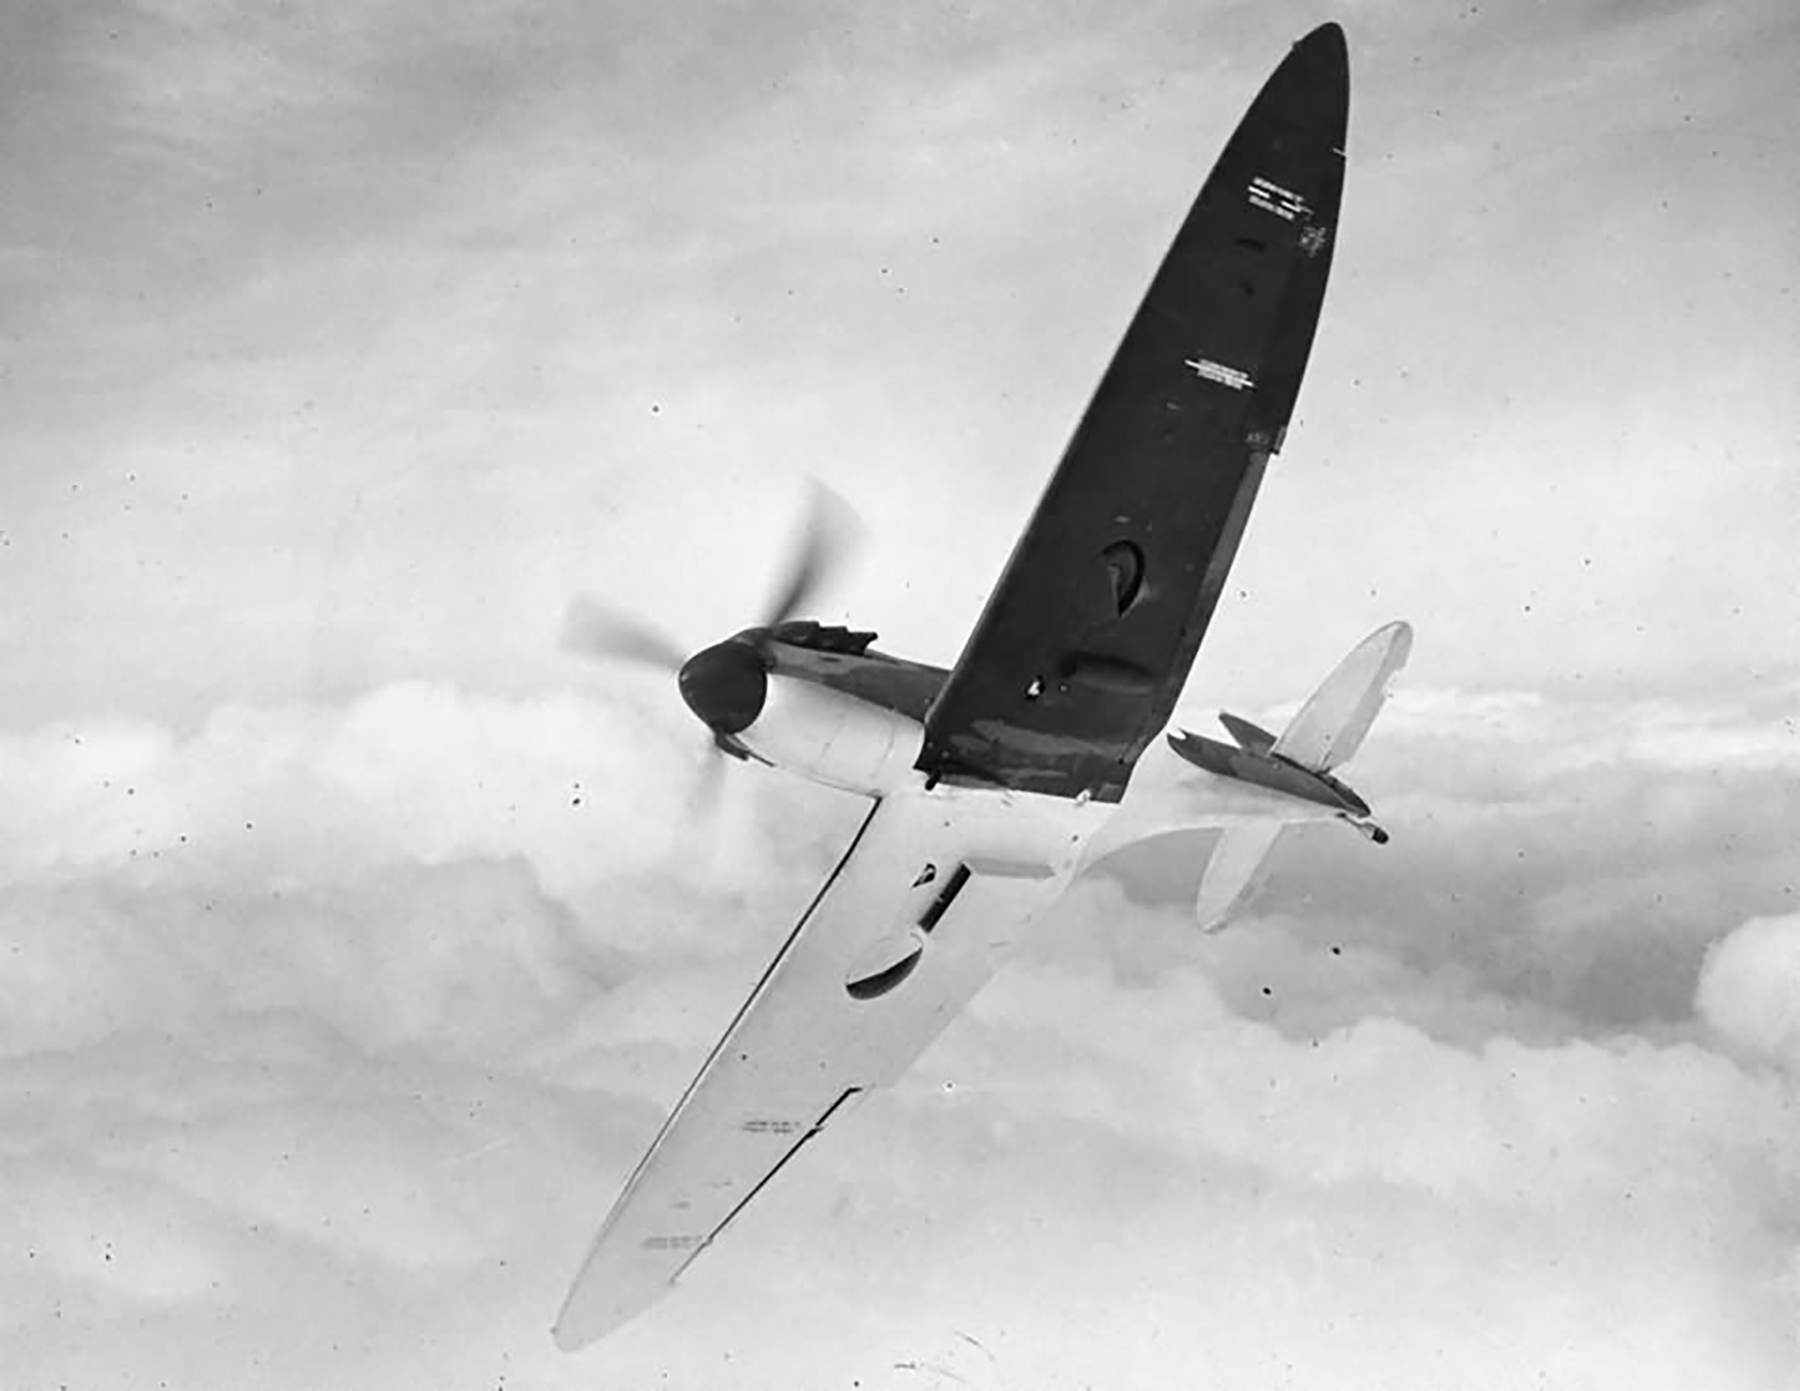 Factory fresh Spitfire MkIa P9450 showing black wing half tone camouflage in flight April 1940 web 01